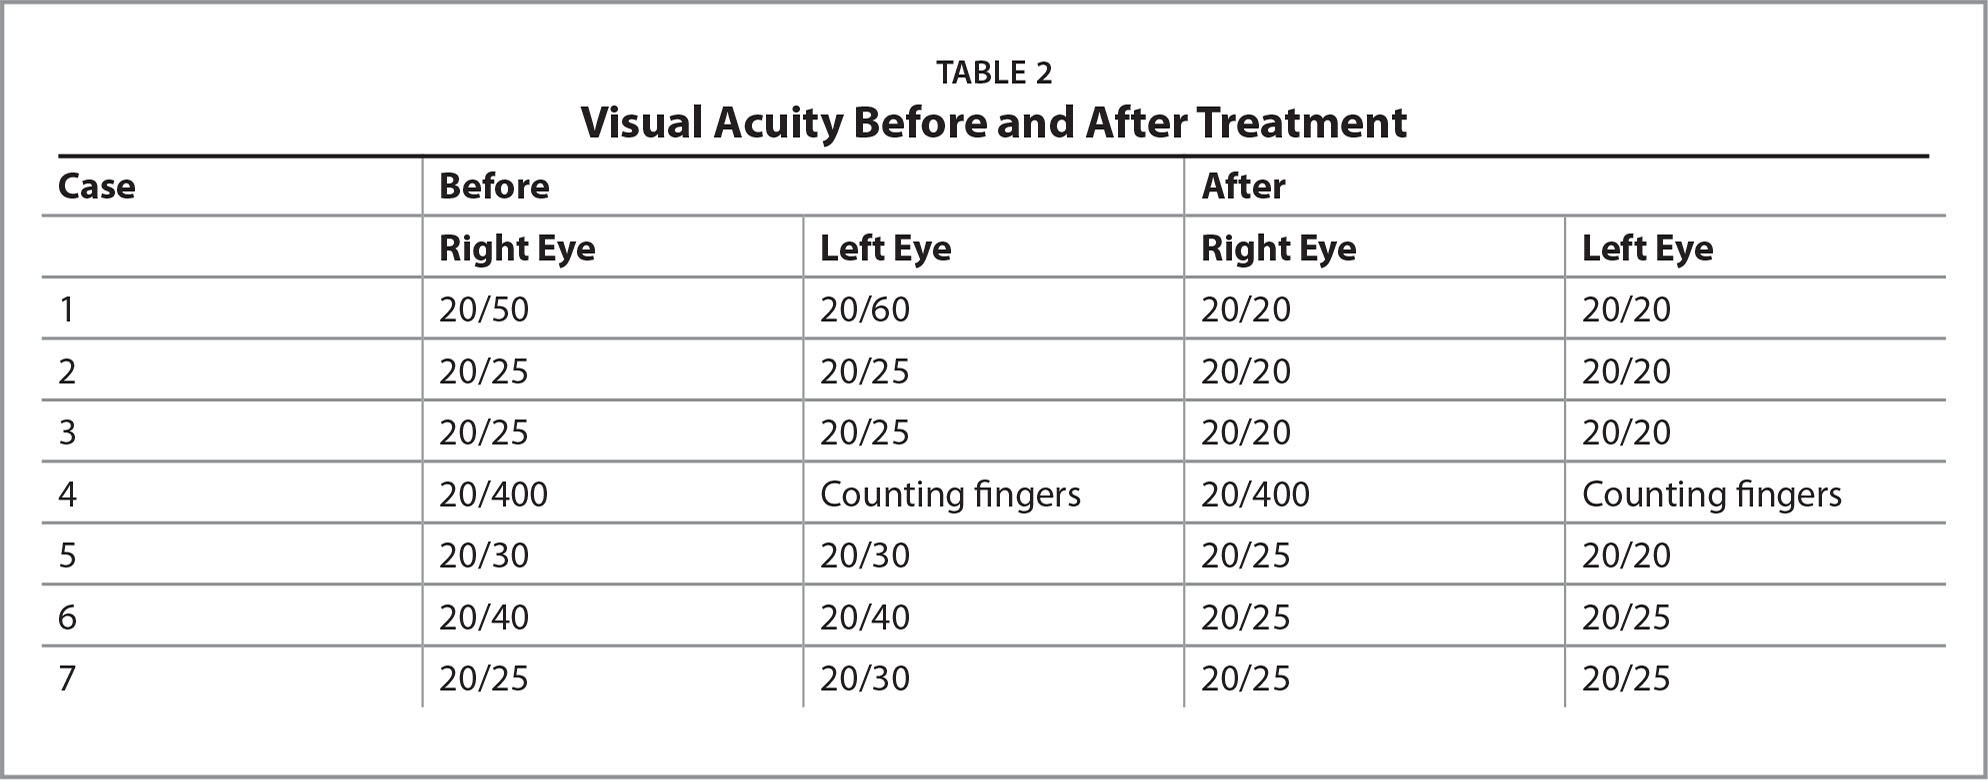 Visual Acuity Before and After Treatment